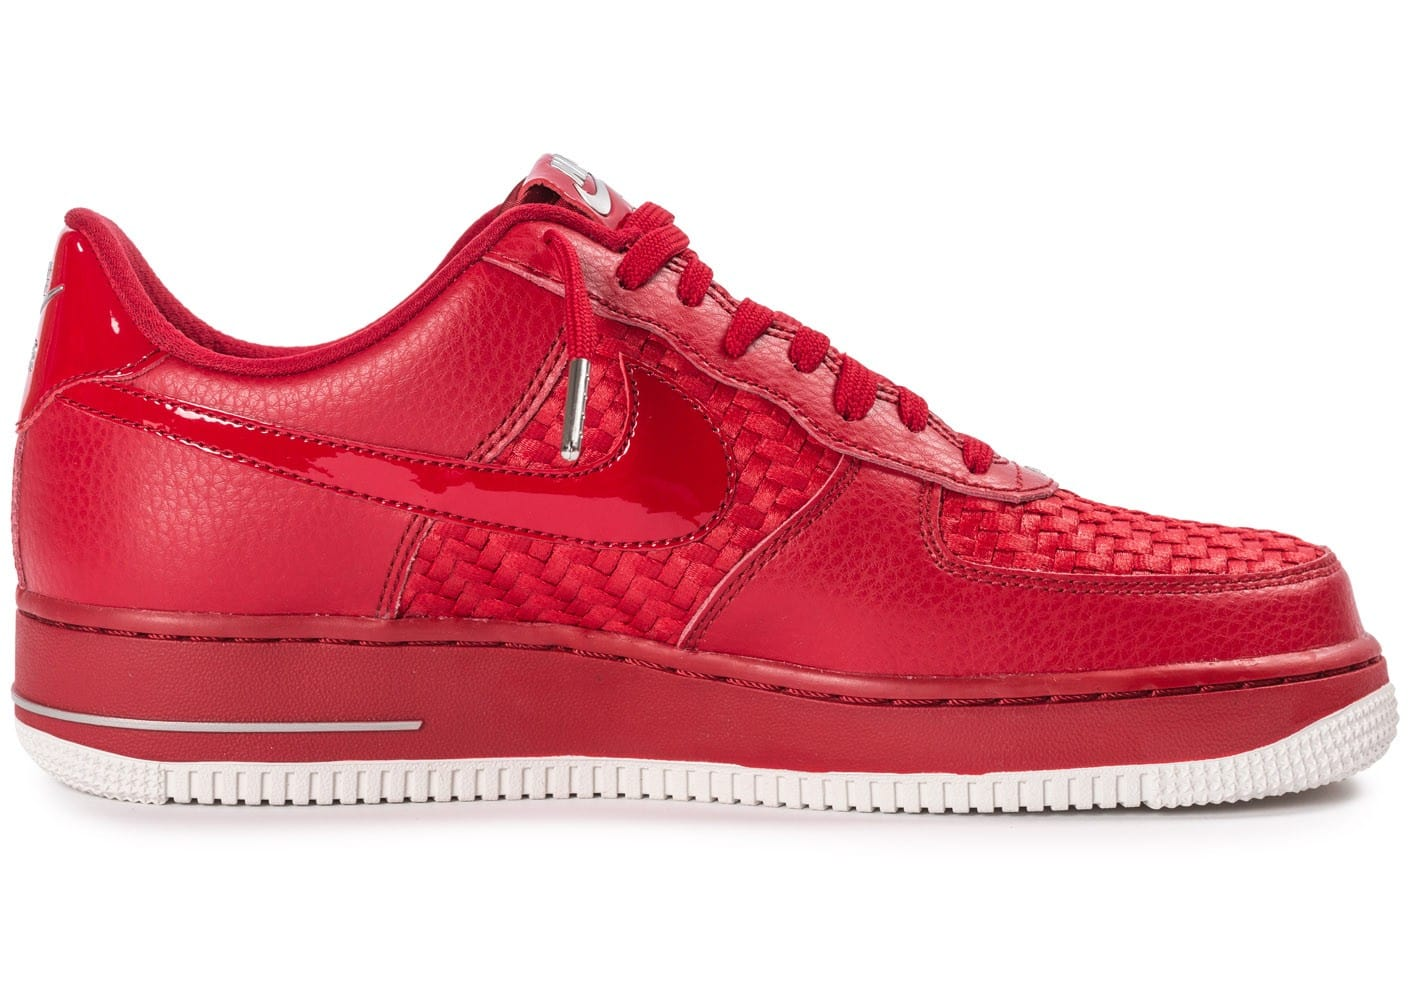 1 Chaussures Homme Nike Air Force Baskets Chausport Low Rouge Lv8 rCWQdxoeB